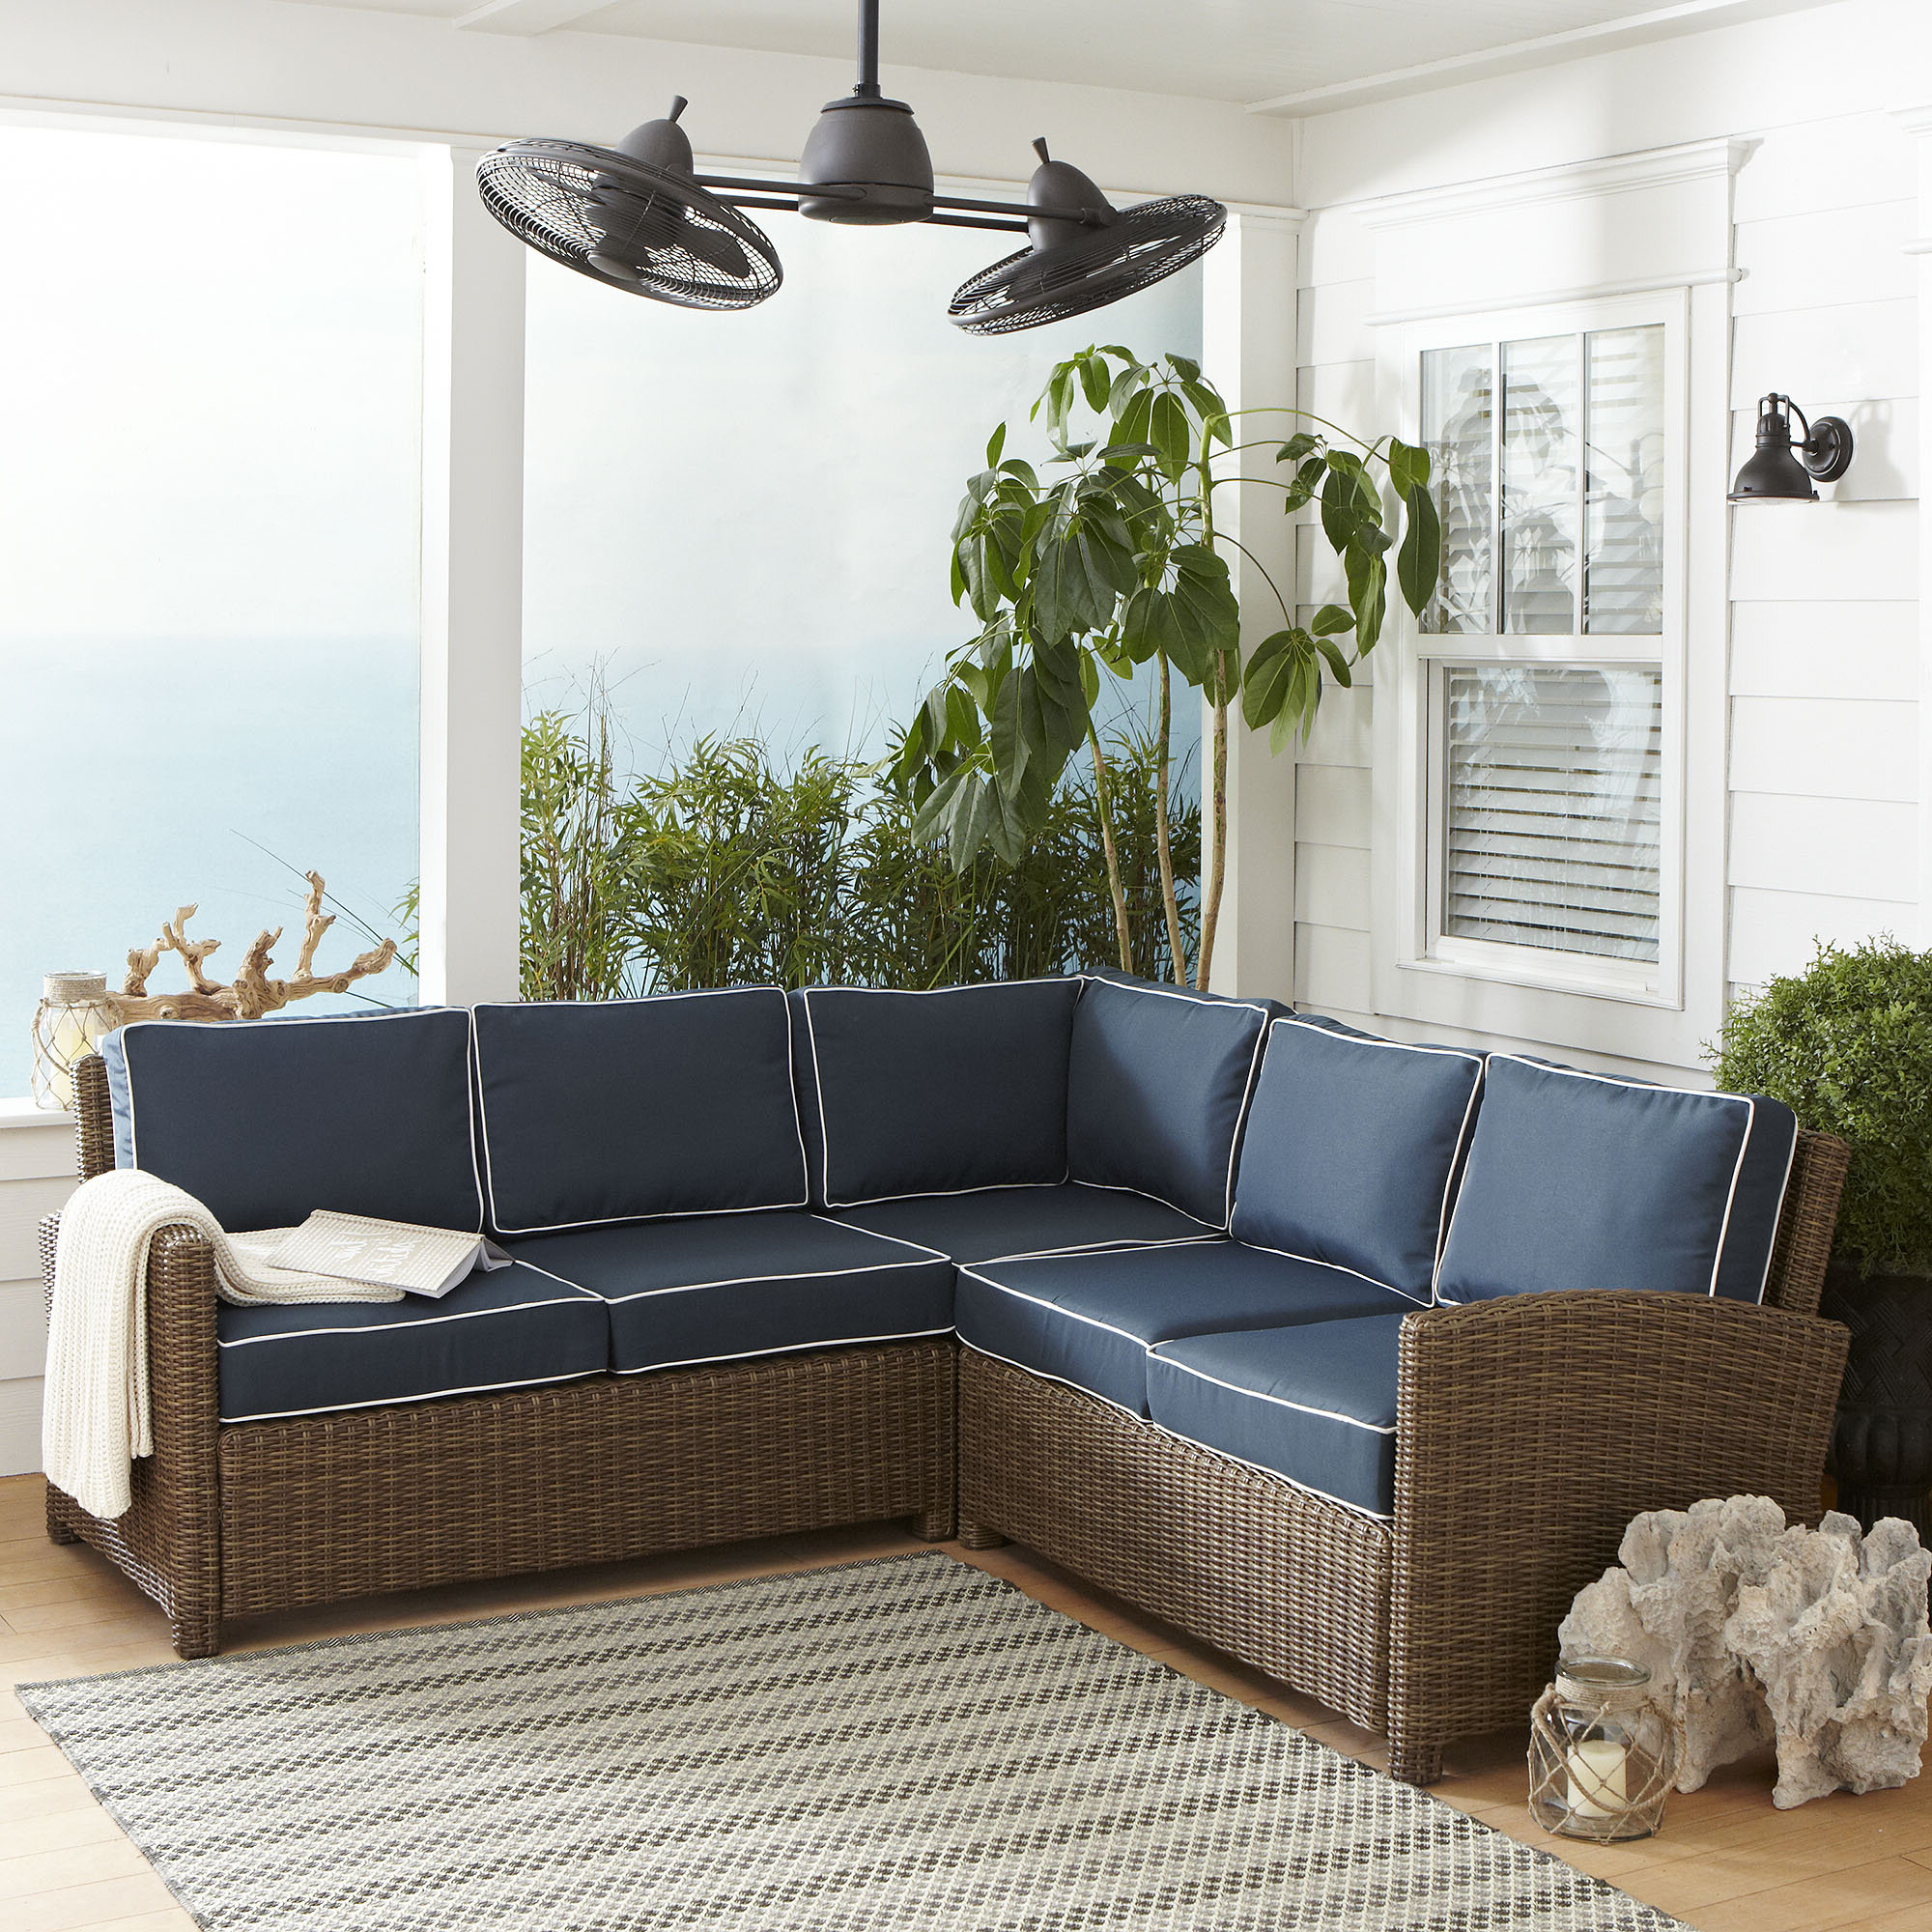 Well Liked Lawson Patio Sectional With Cushions Within Lawson Patio Sofas With Cushions (Gallery 6 of 25)